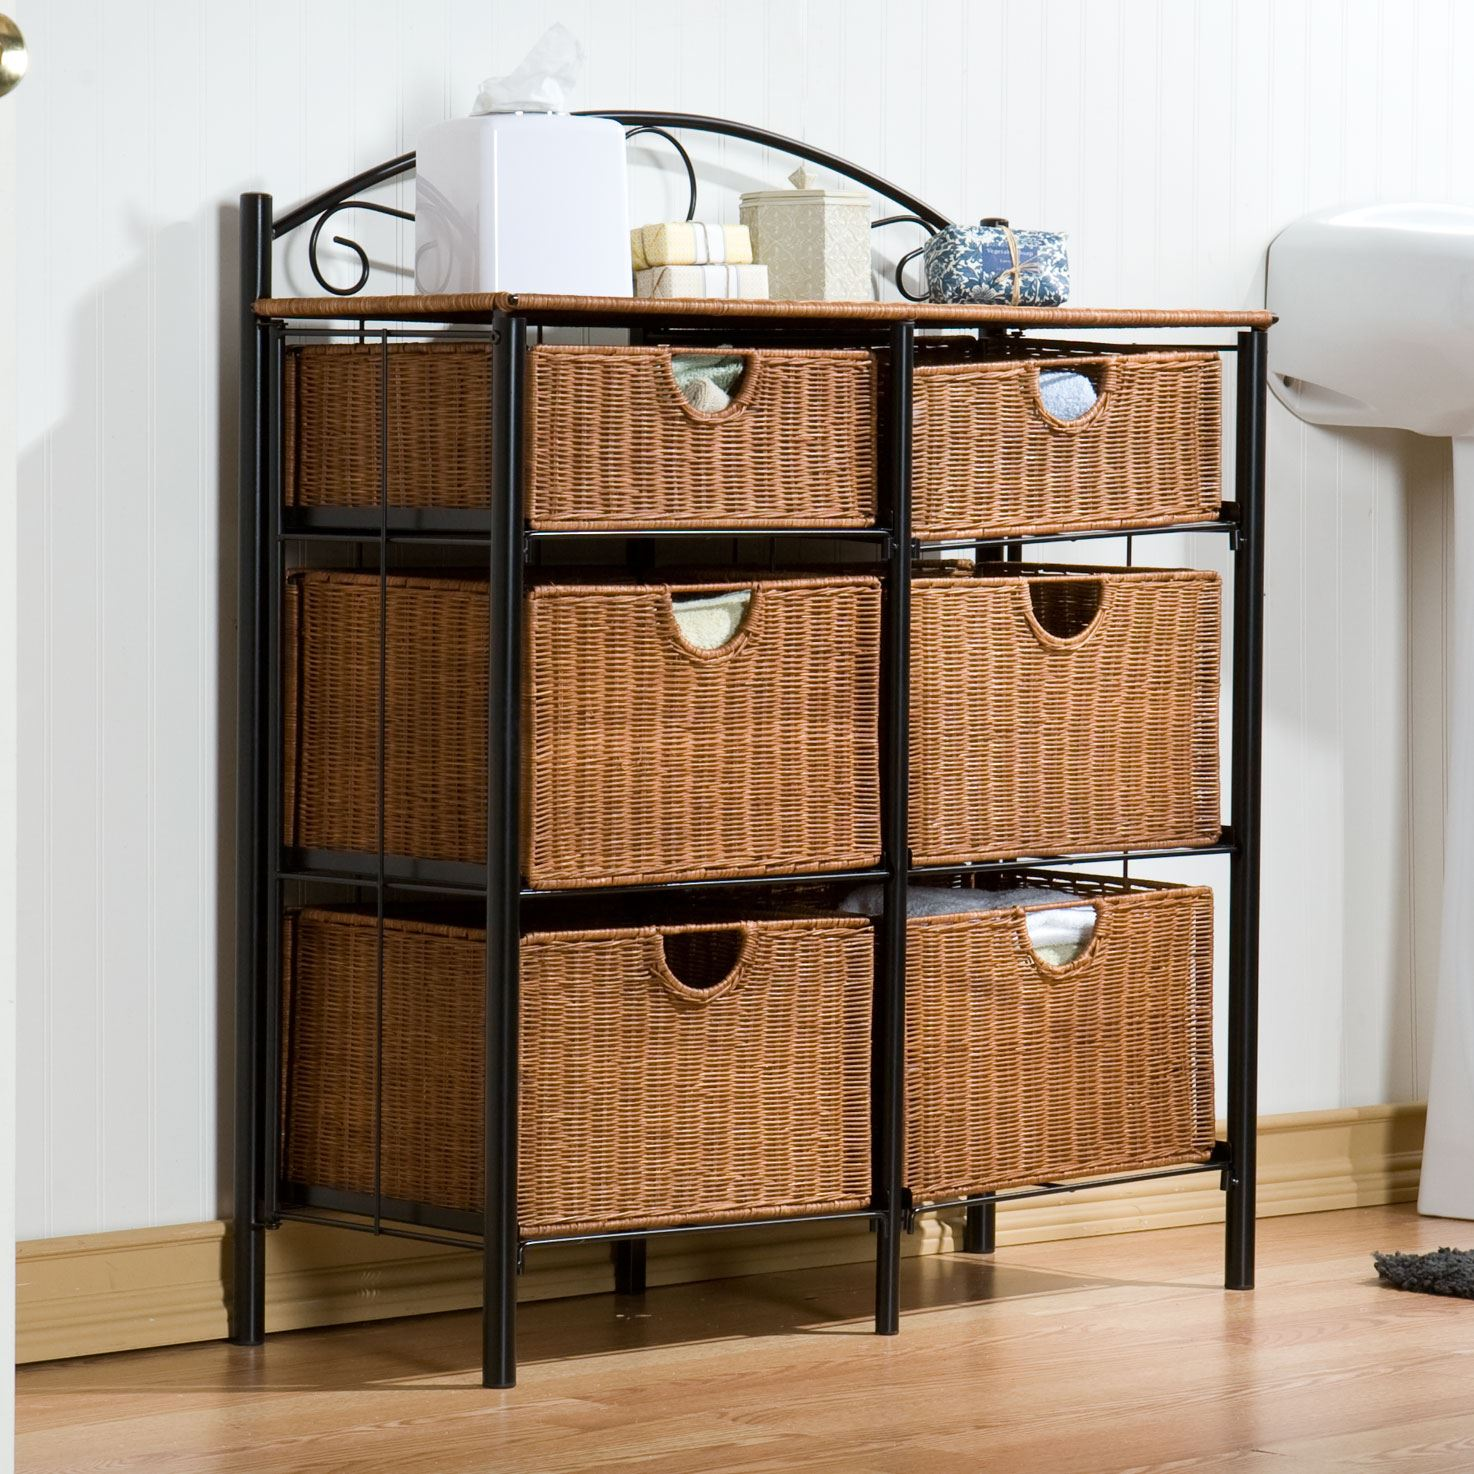 Iron/Wicker Storage Chest,